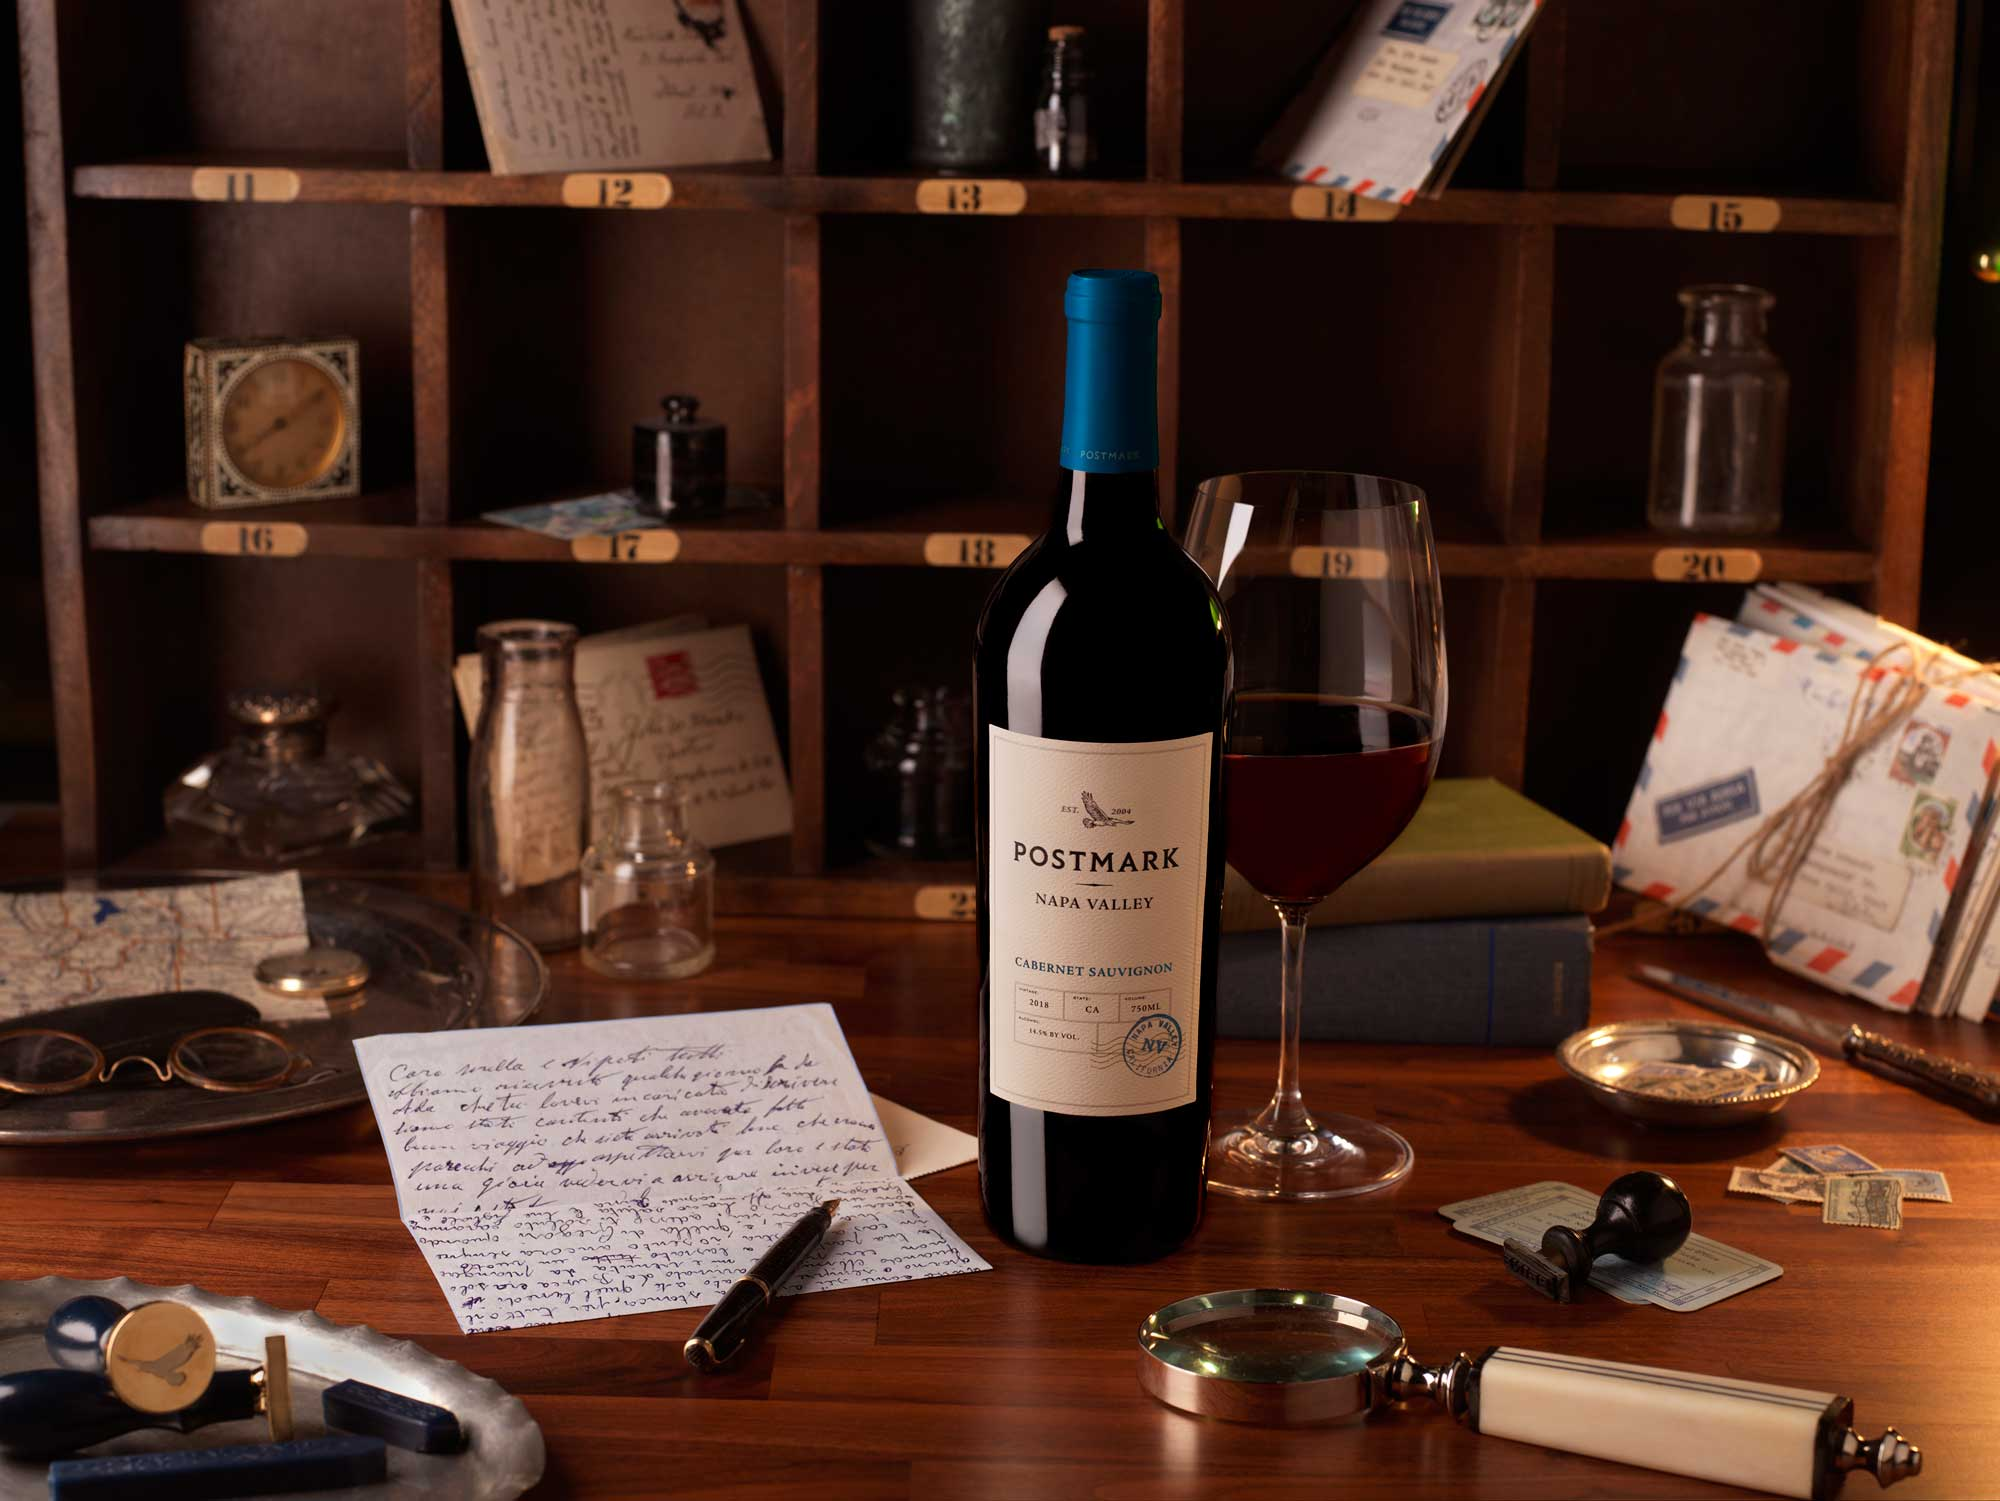 Postmark Wine Bottle and Glass of Napa Cabernet Sauvignon on Desk